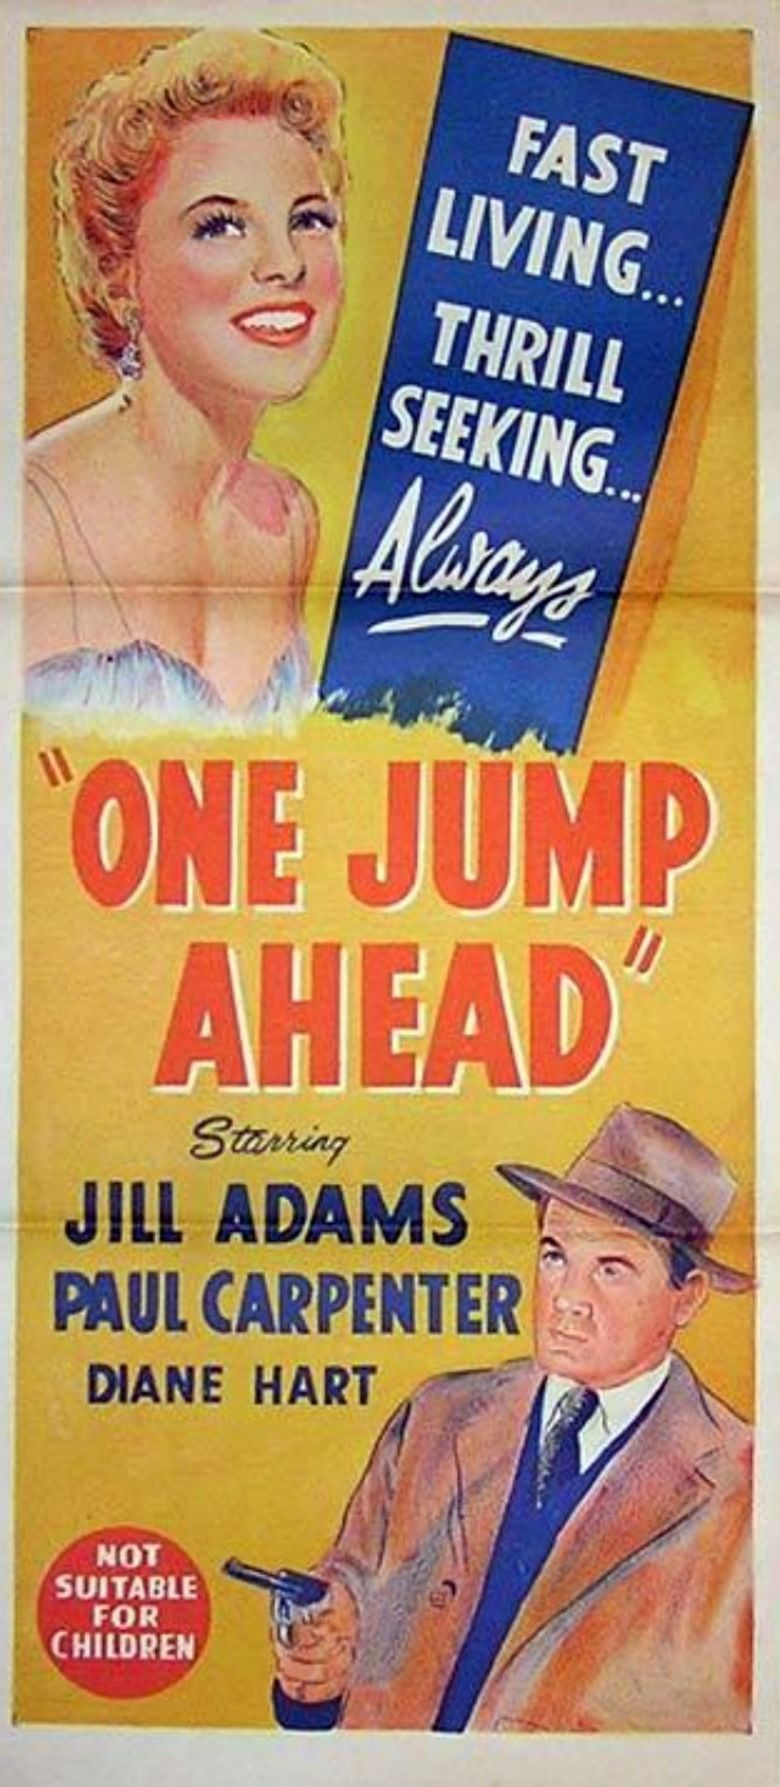 One Jump Ahead (film) movie poster